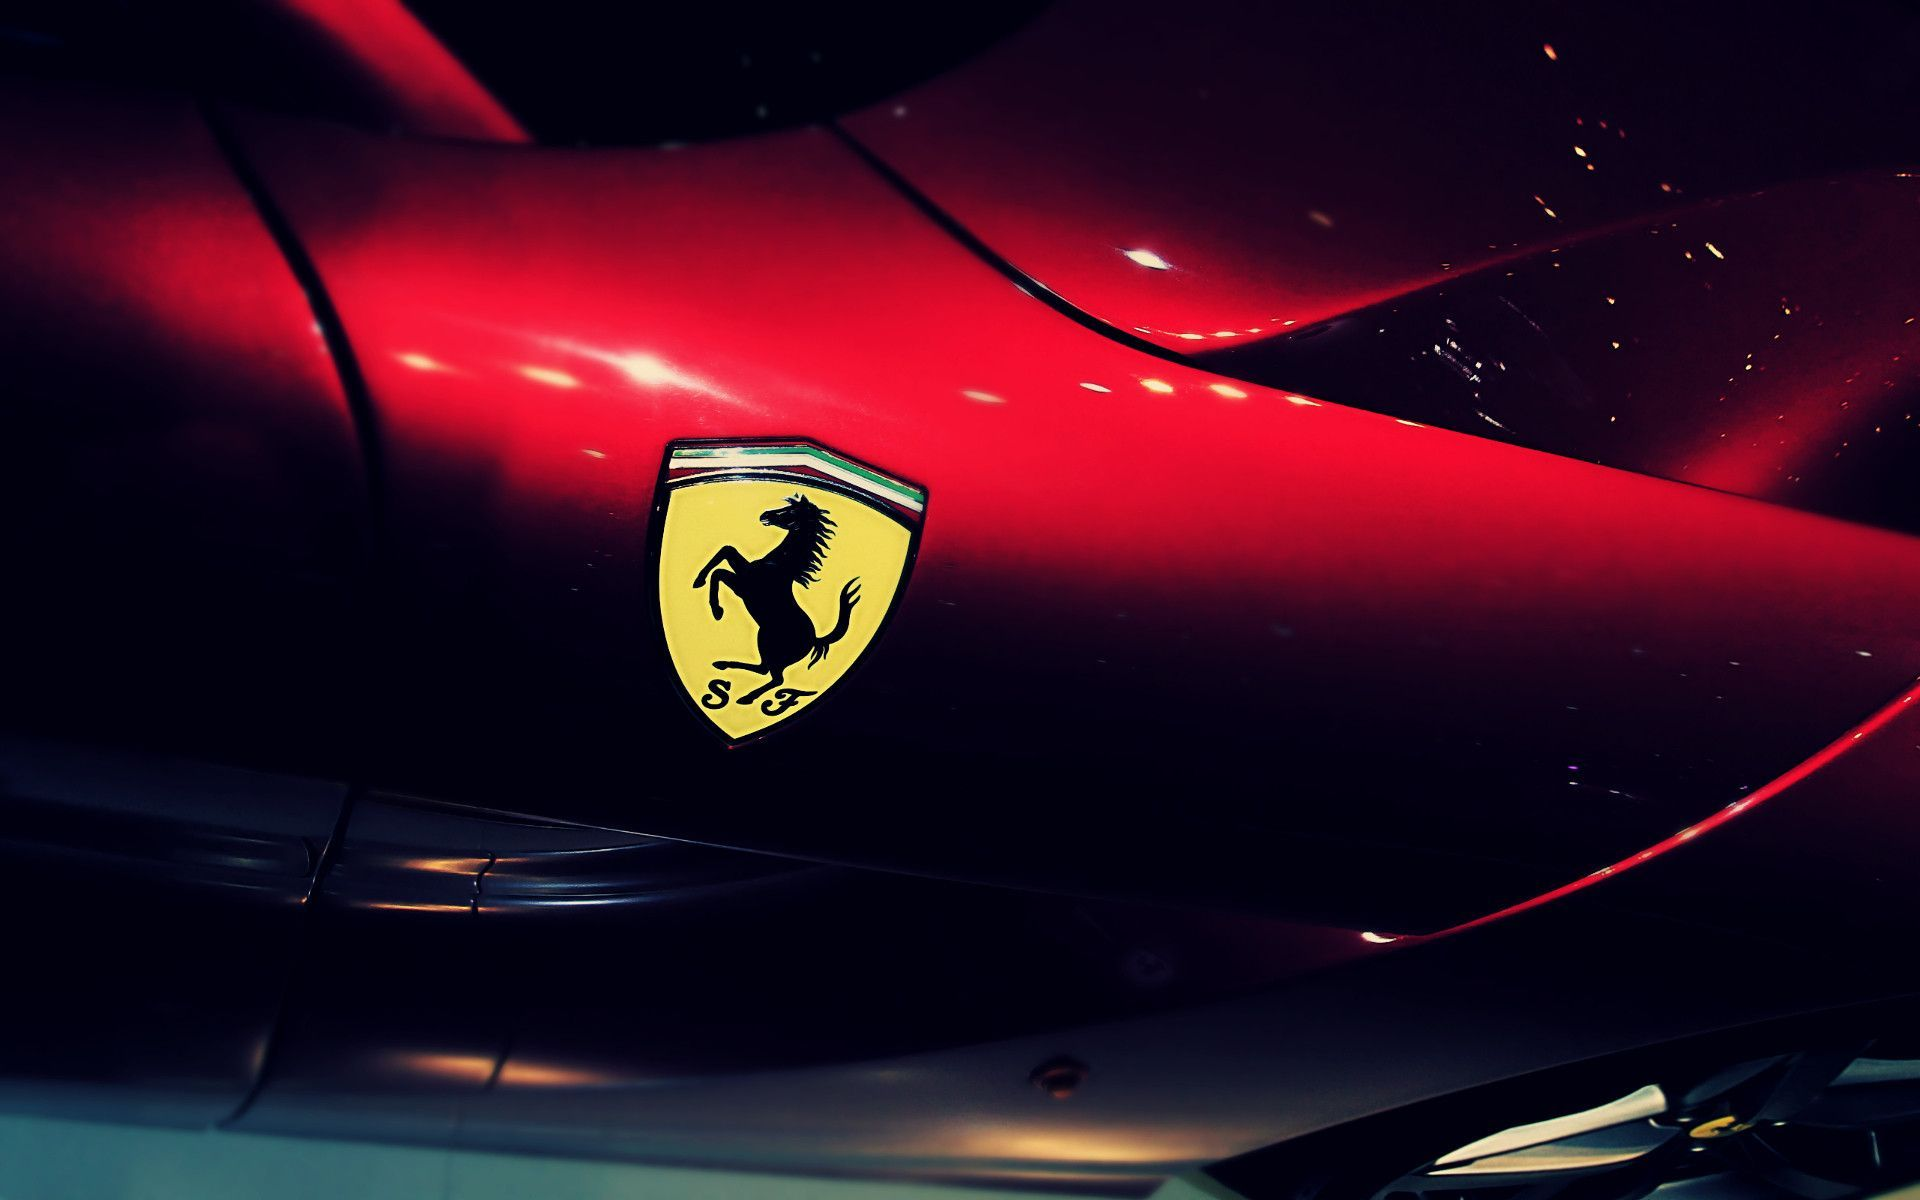 Wallpaper Logo Mobil Sport: Ferrari Wallpapers Full Hd